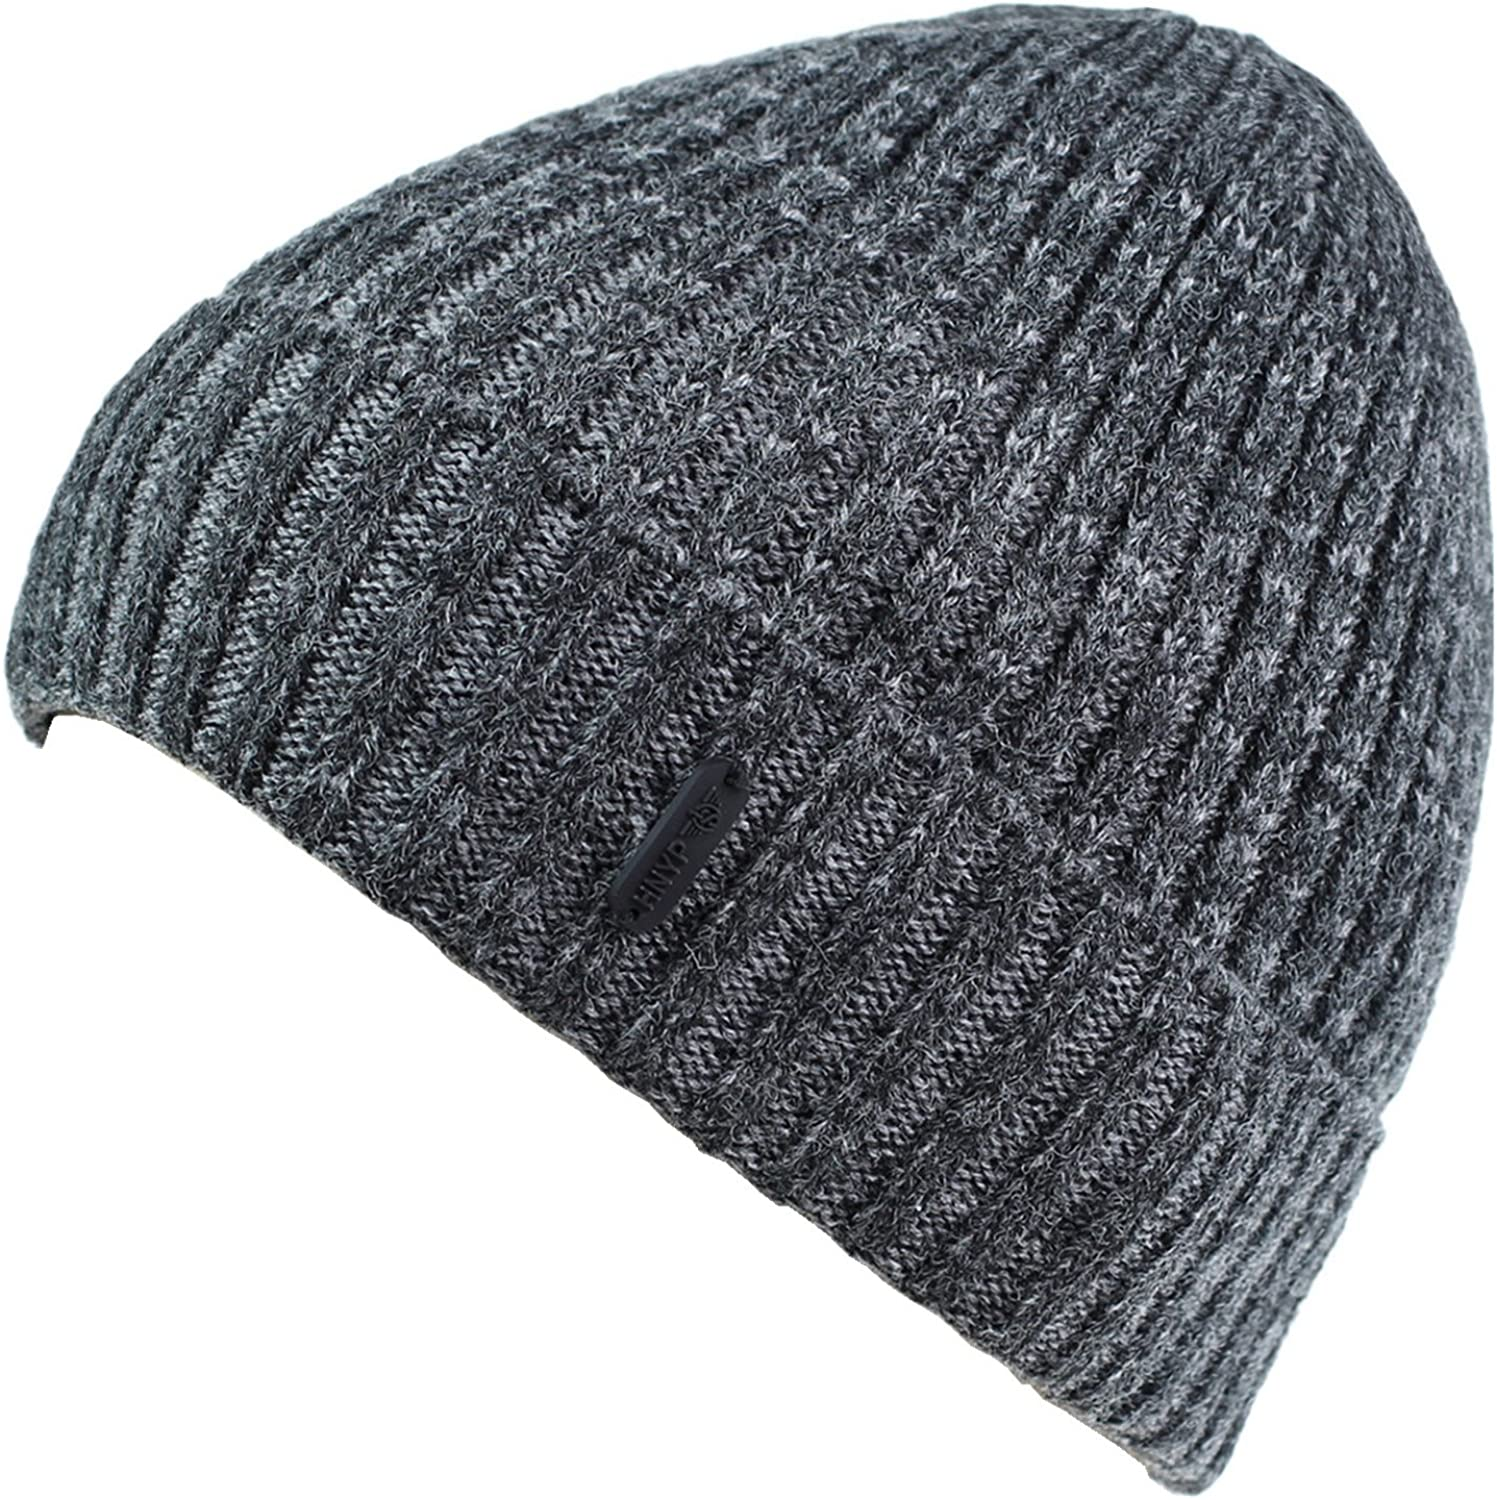 Decentron Classic Mens Warm Winter Hats Thick Knit Long Cuff Beanie Cap with Lining